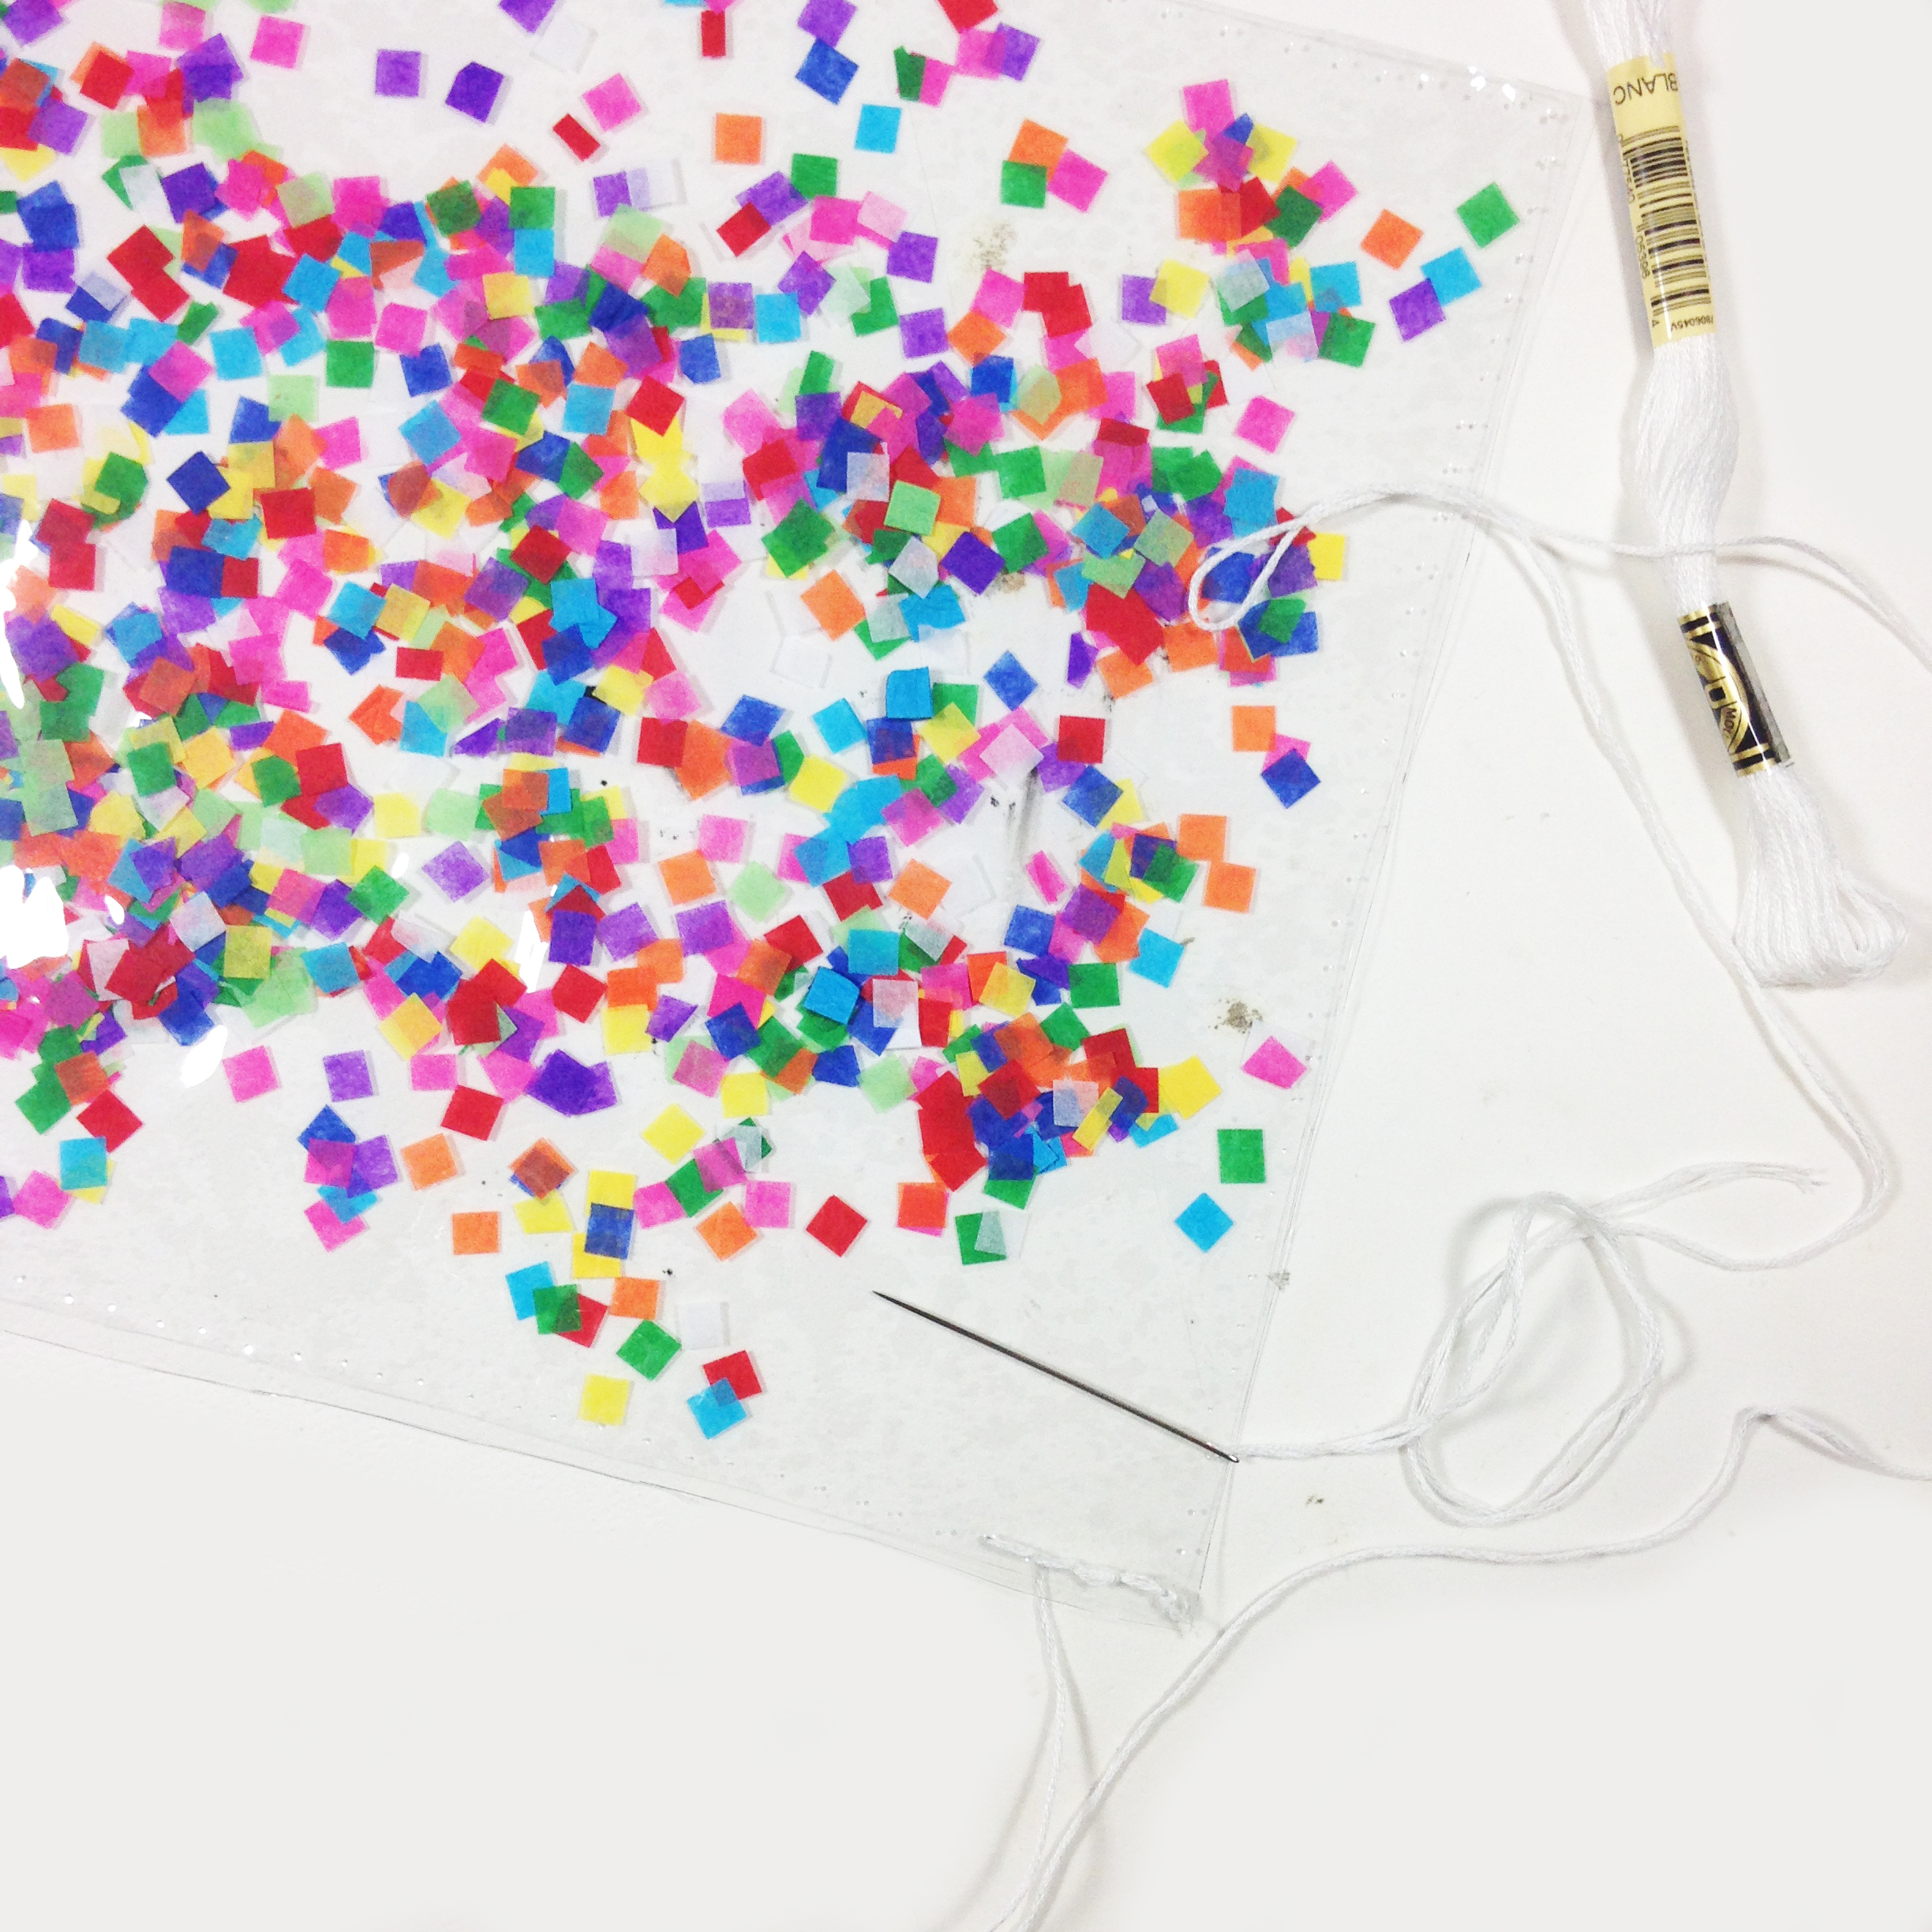 DIY CONFETTI PENCIL CASE TUTORIAL | THE PAPER CURATOR